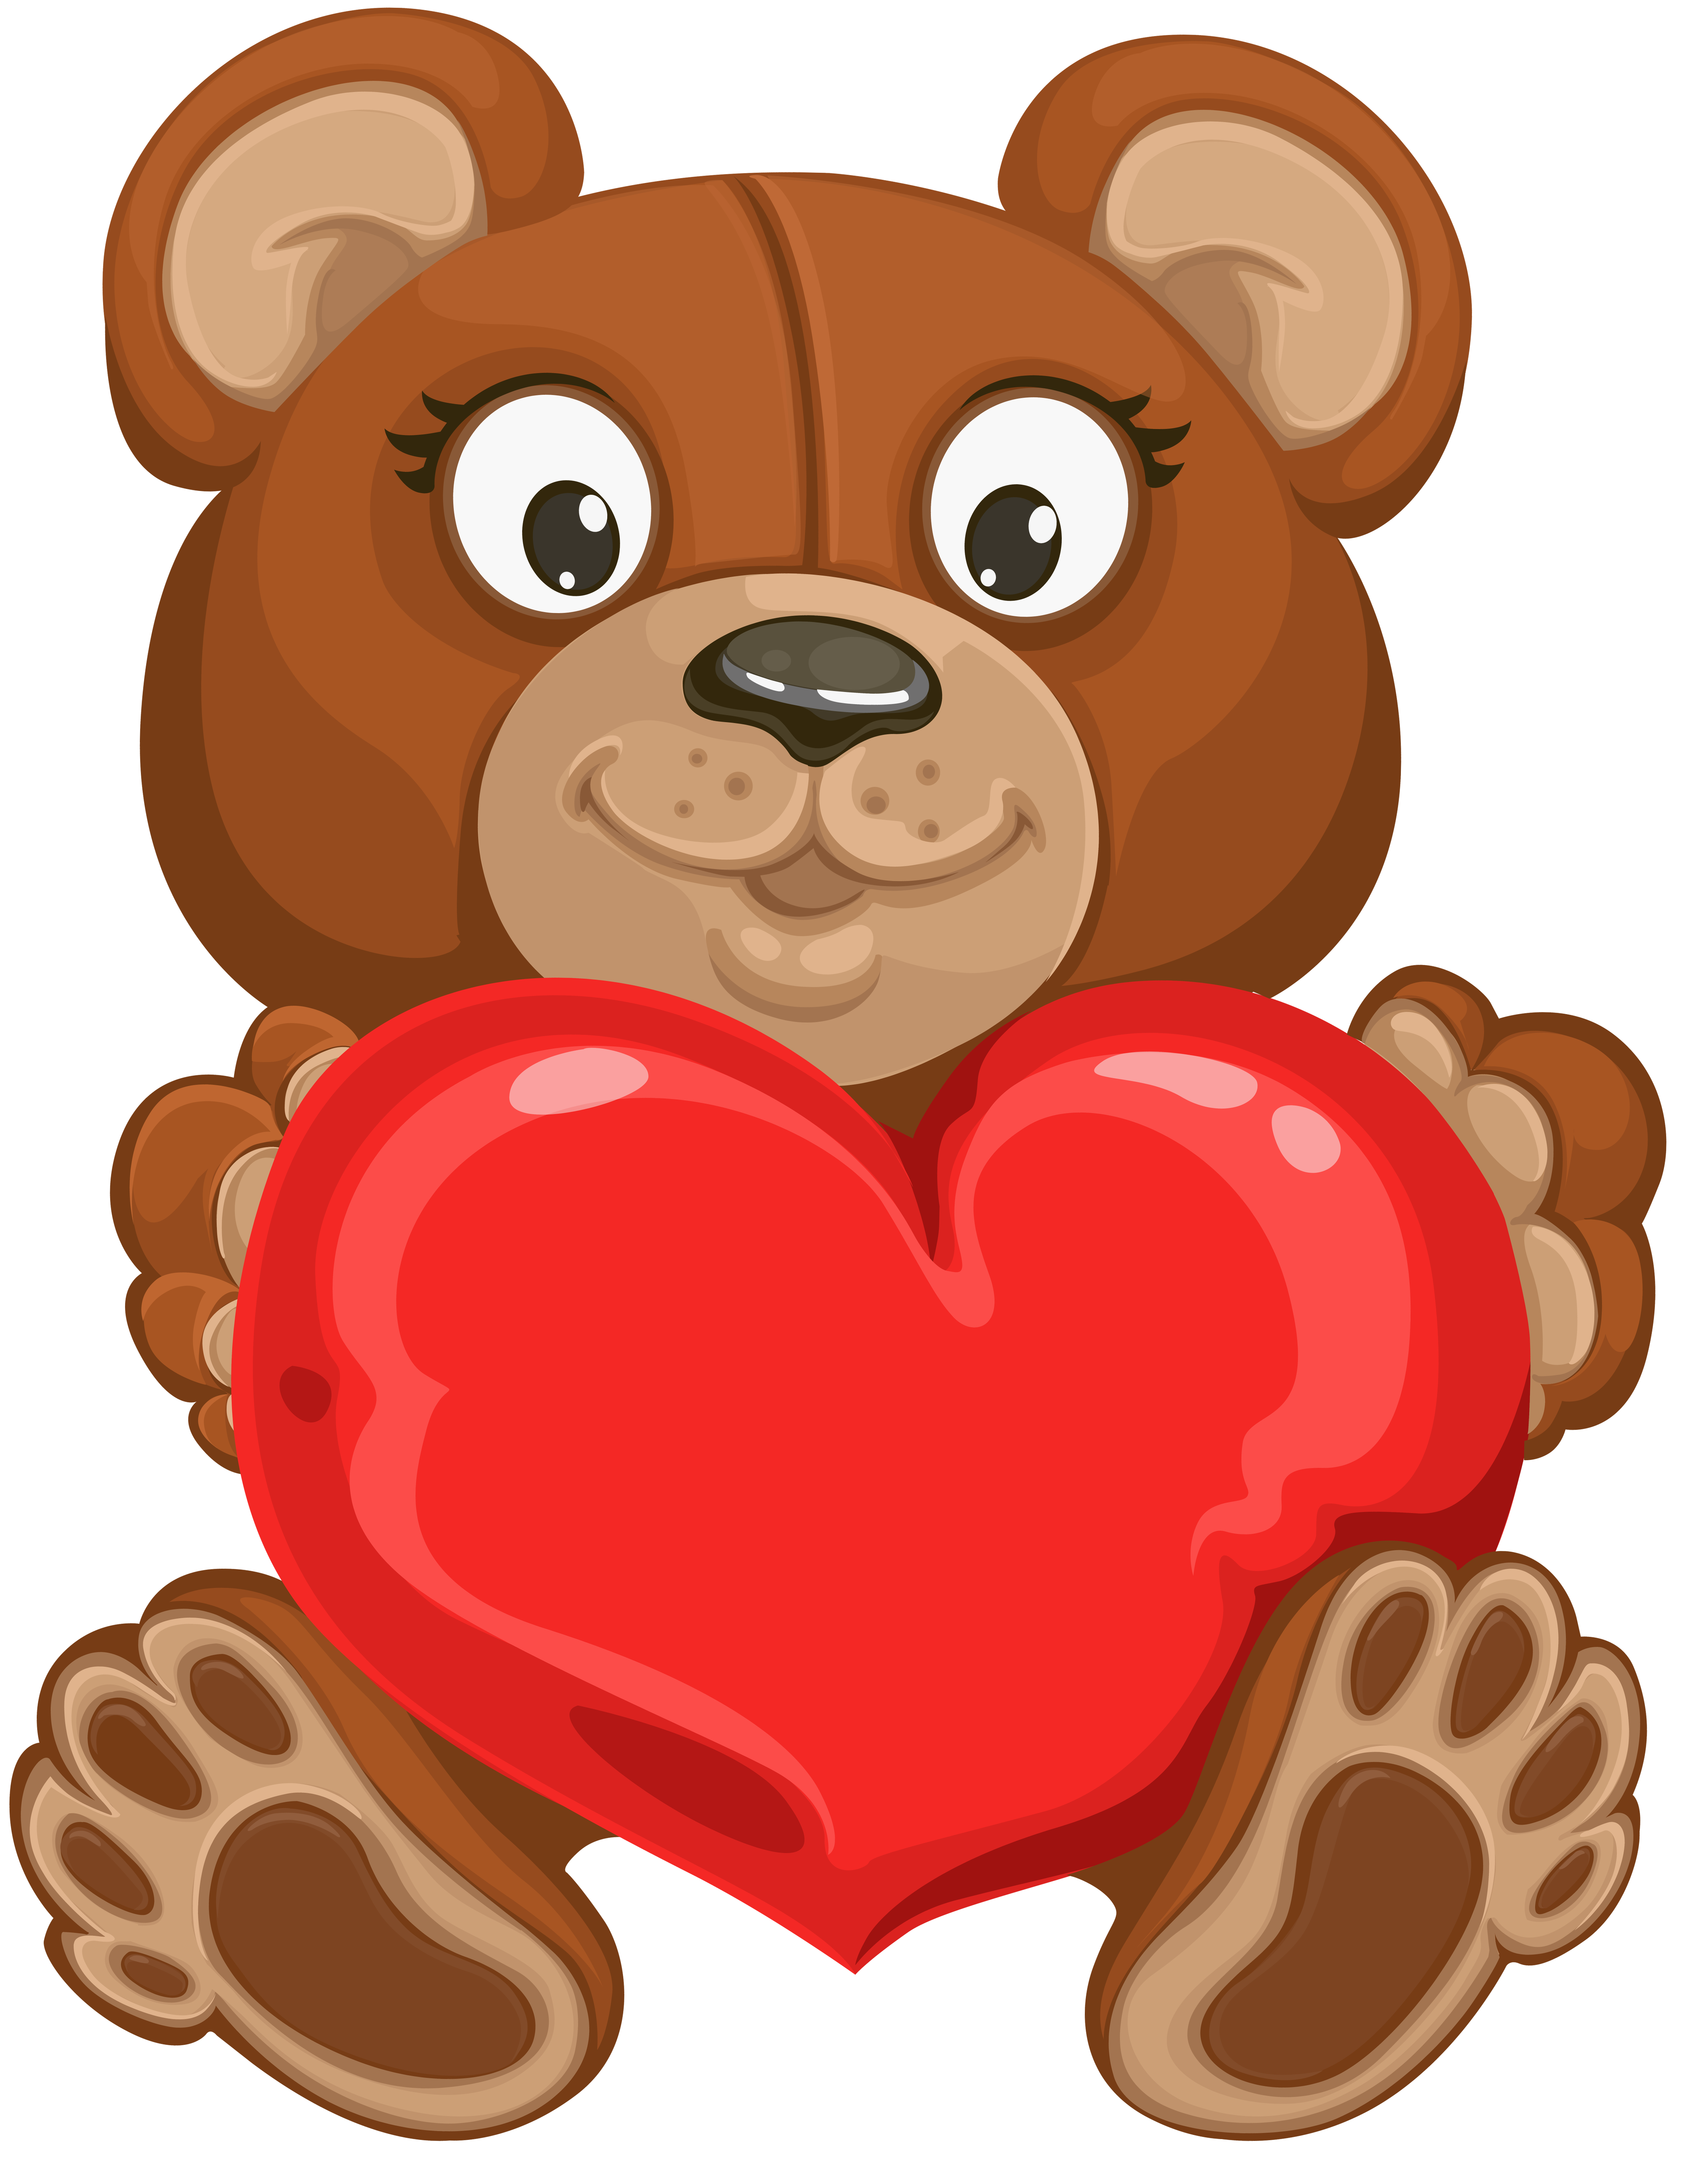 Bear with heart clipart graphic transparent stock Valentine Teddy Bear Clipart at GetDrawings.com | Free for personal ... graphic transparent stock